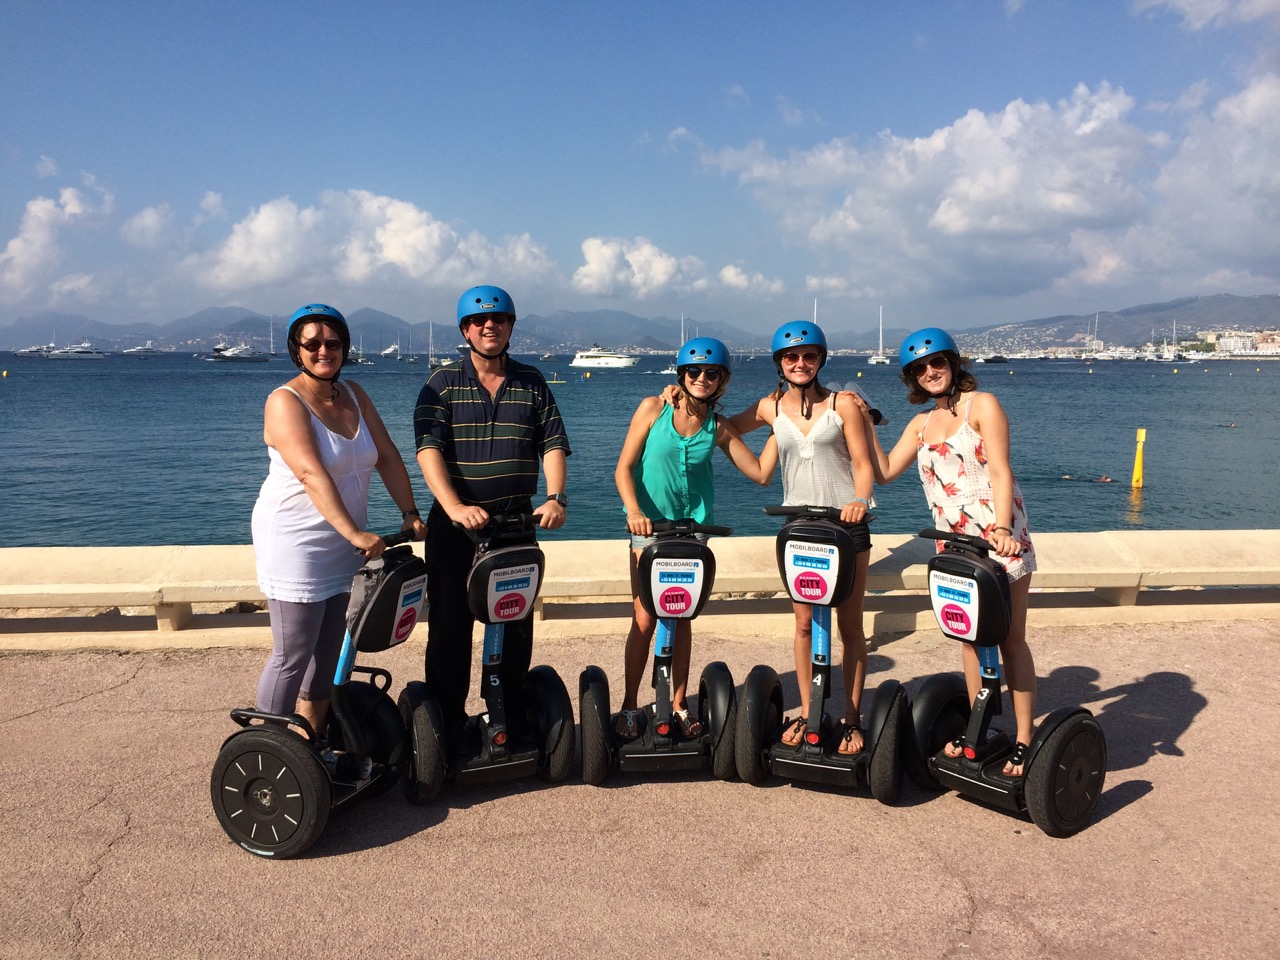 City Tour by MobilBoard Segway Cannes - The Quai Saint-Pierre and its Old Port between its new last yachts and old rigging